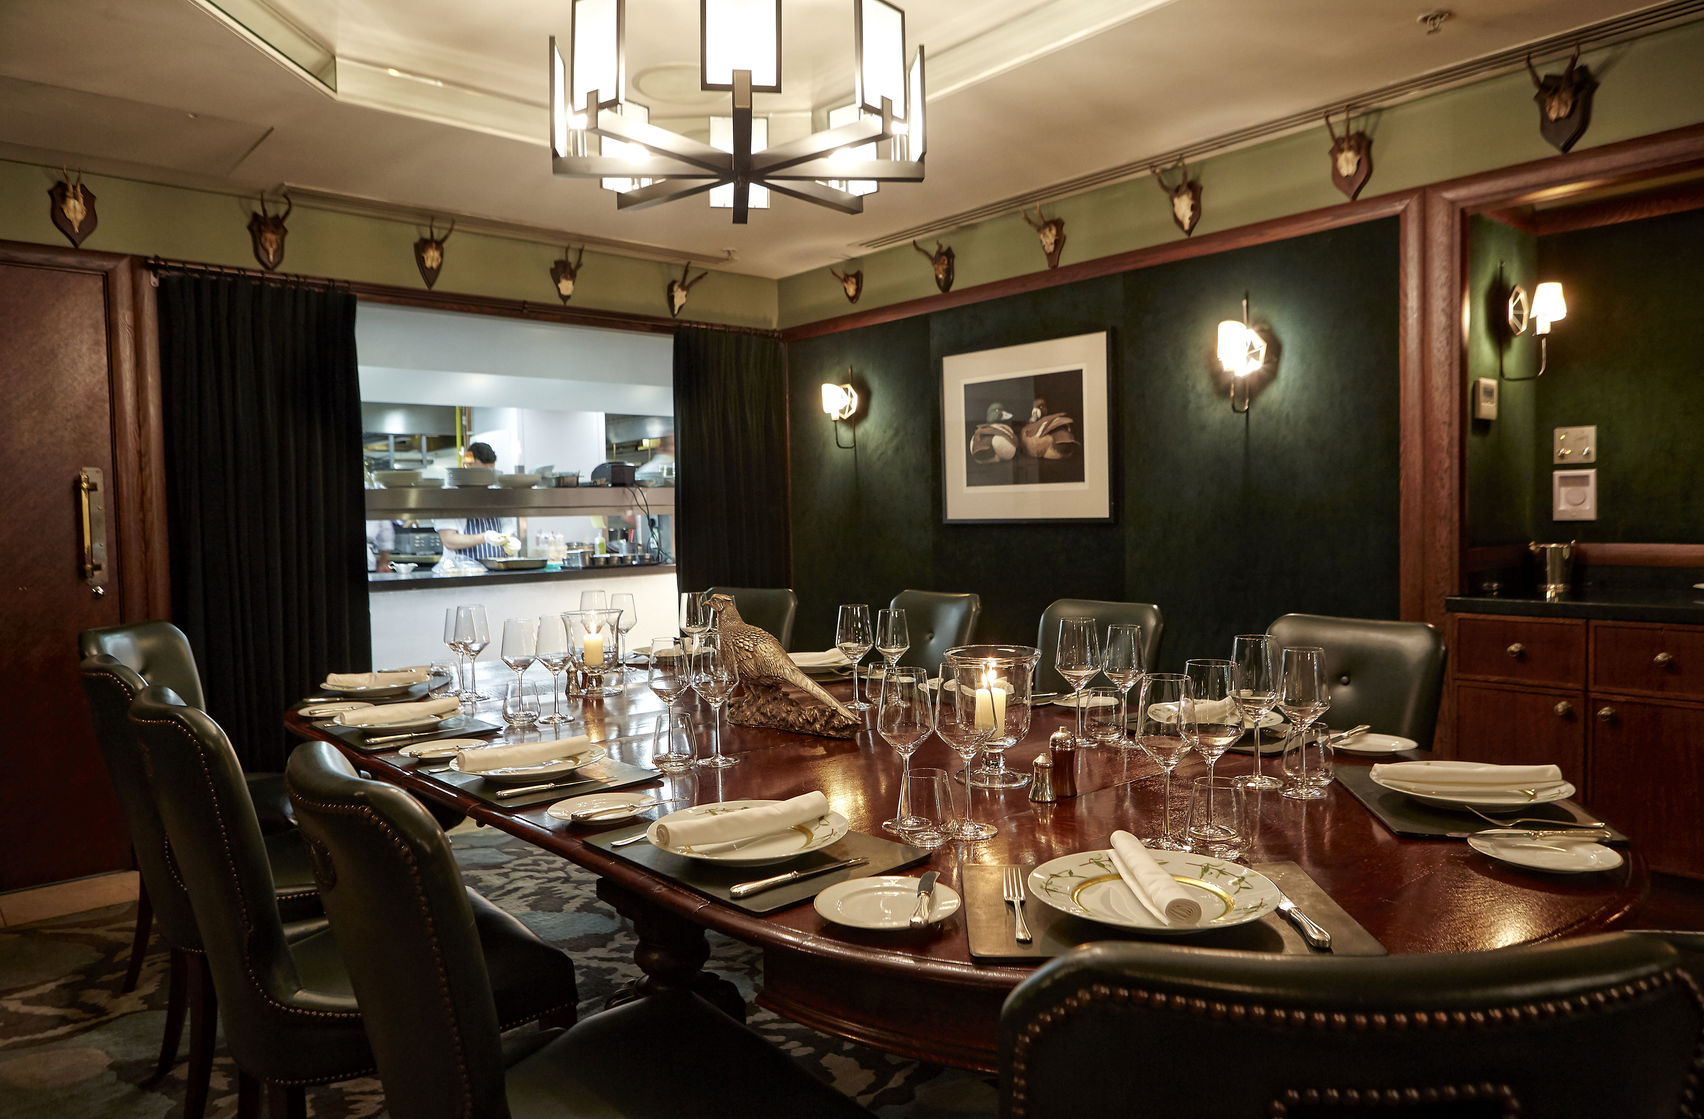 find private dining rooms in london for hire. – headbox